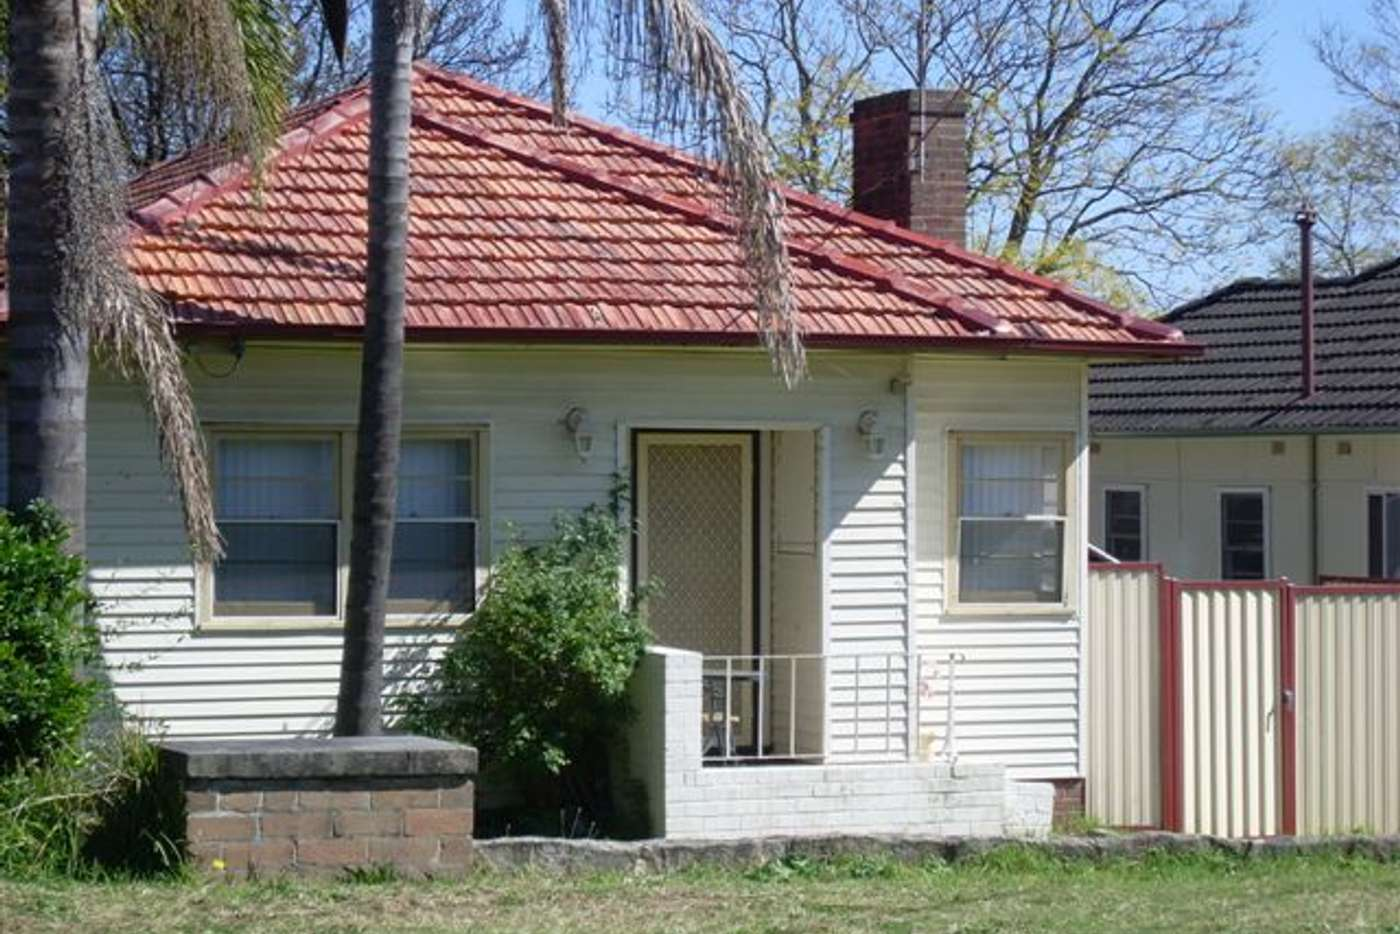 Main view of Homely house listing, 49 Brabyn Street, North Parramatta NSW 2151